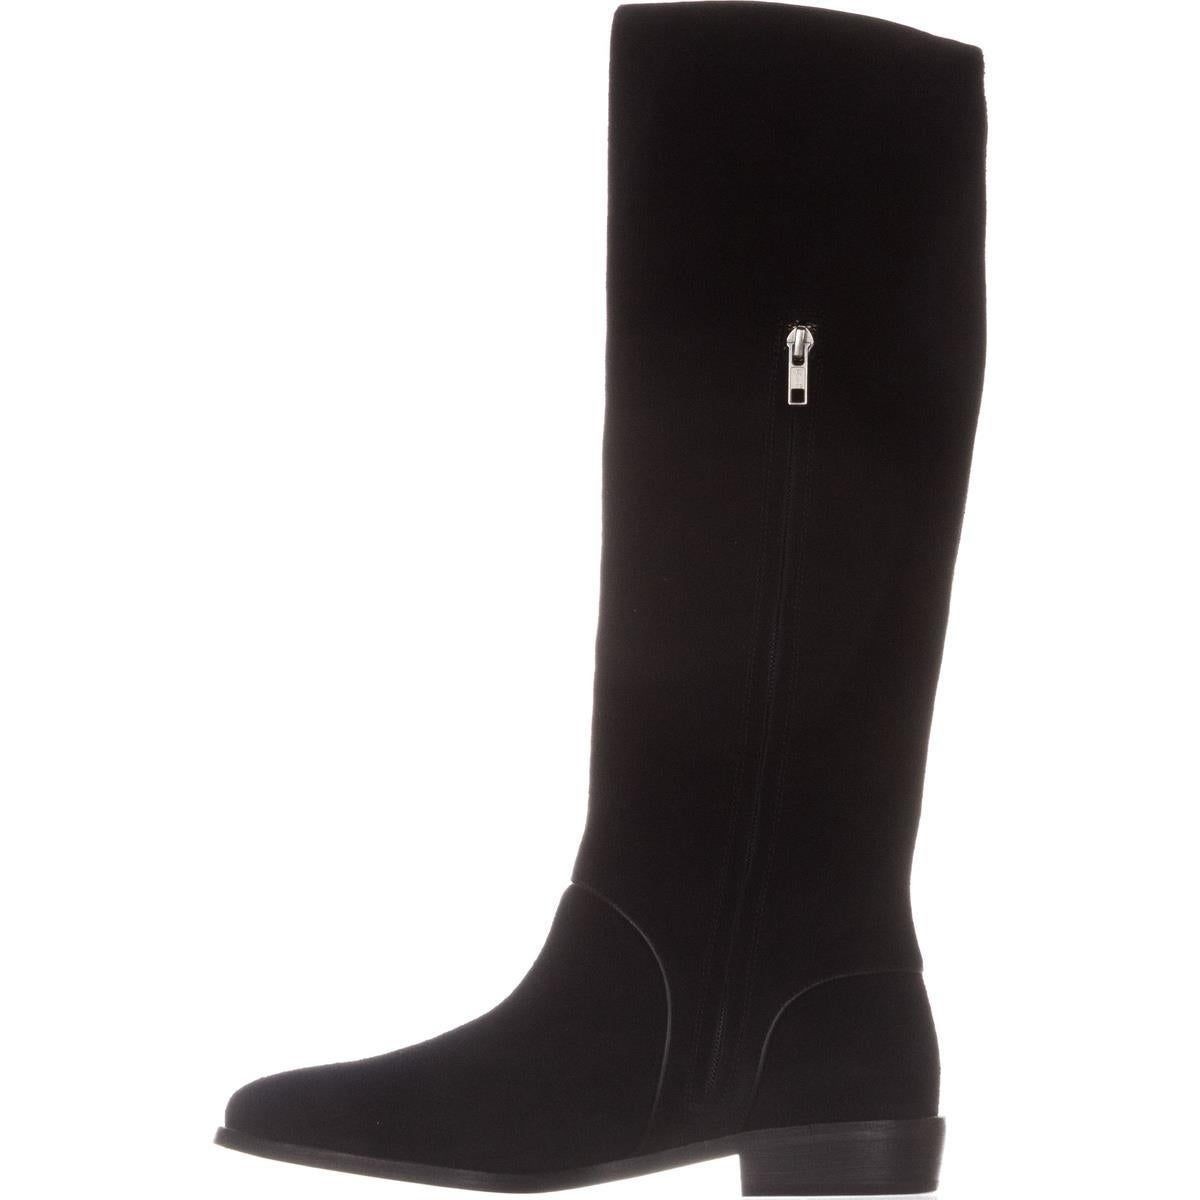 Shop UGG Australia Gracen Mid-Calf Riding Boots, Black Suede - Free Shipping Today - Overstock.com - 19205921